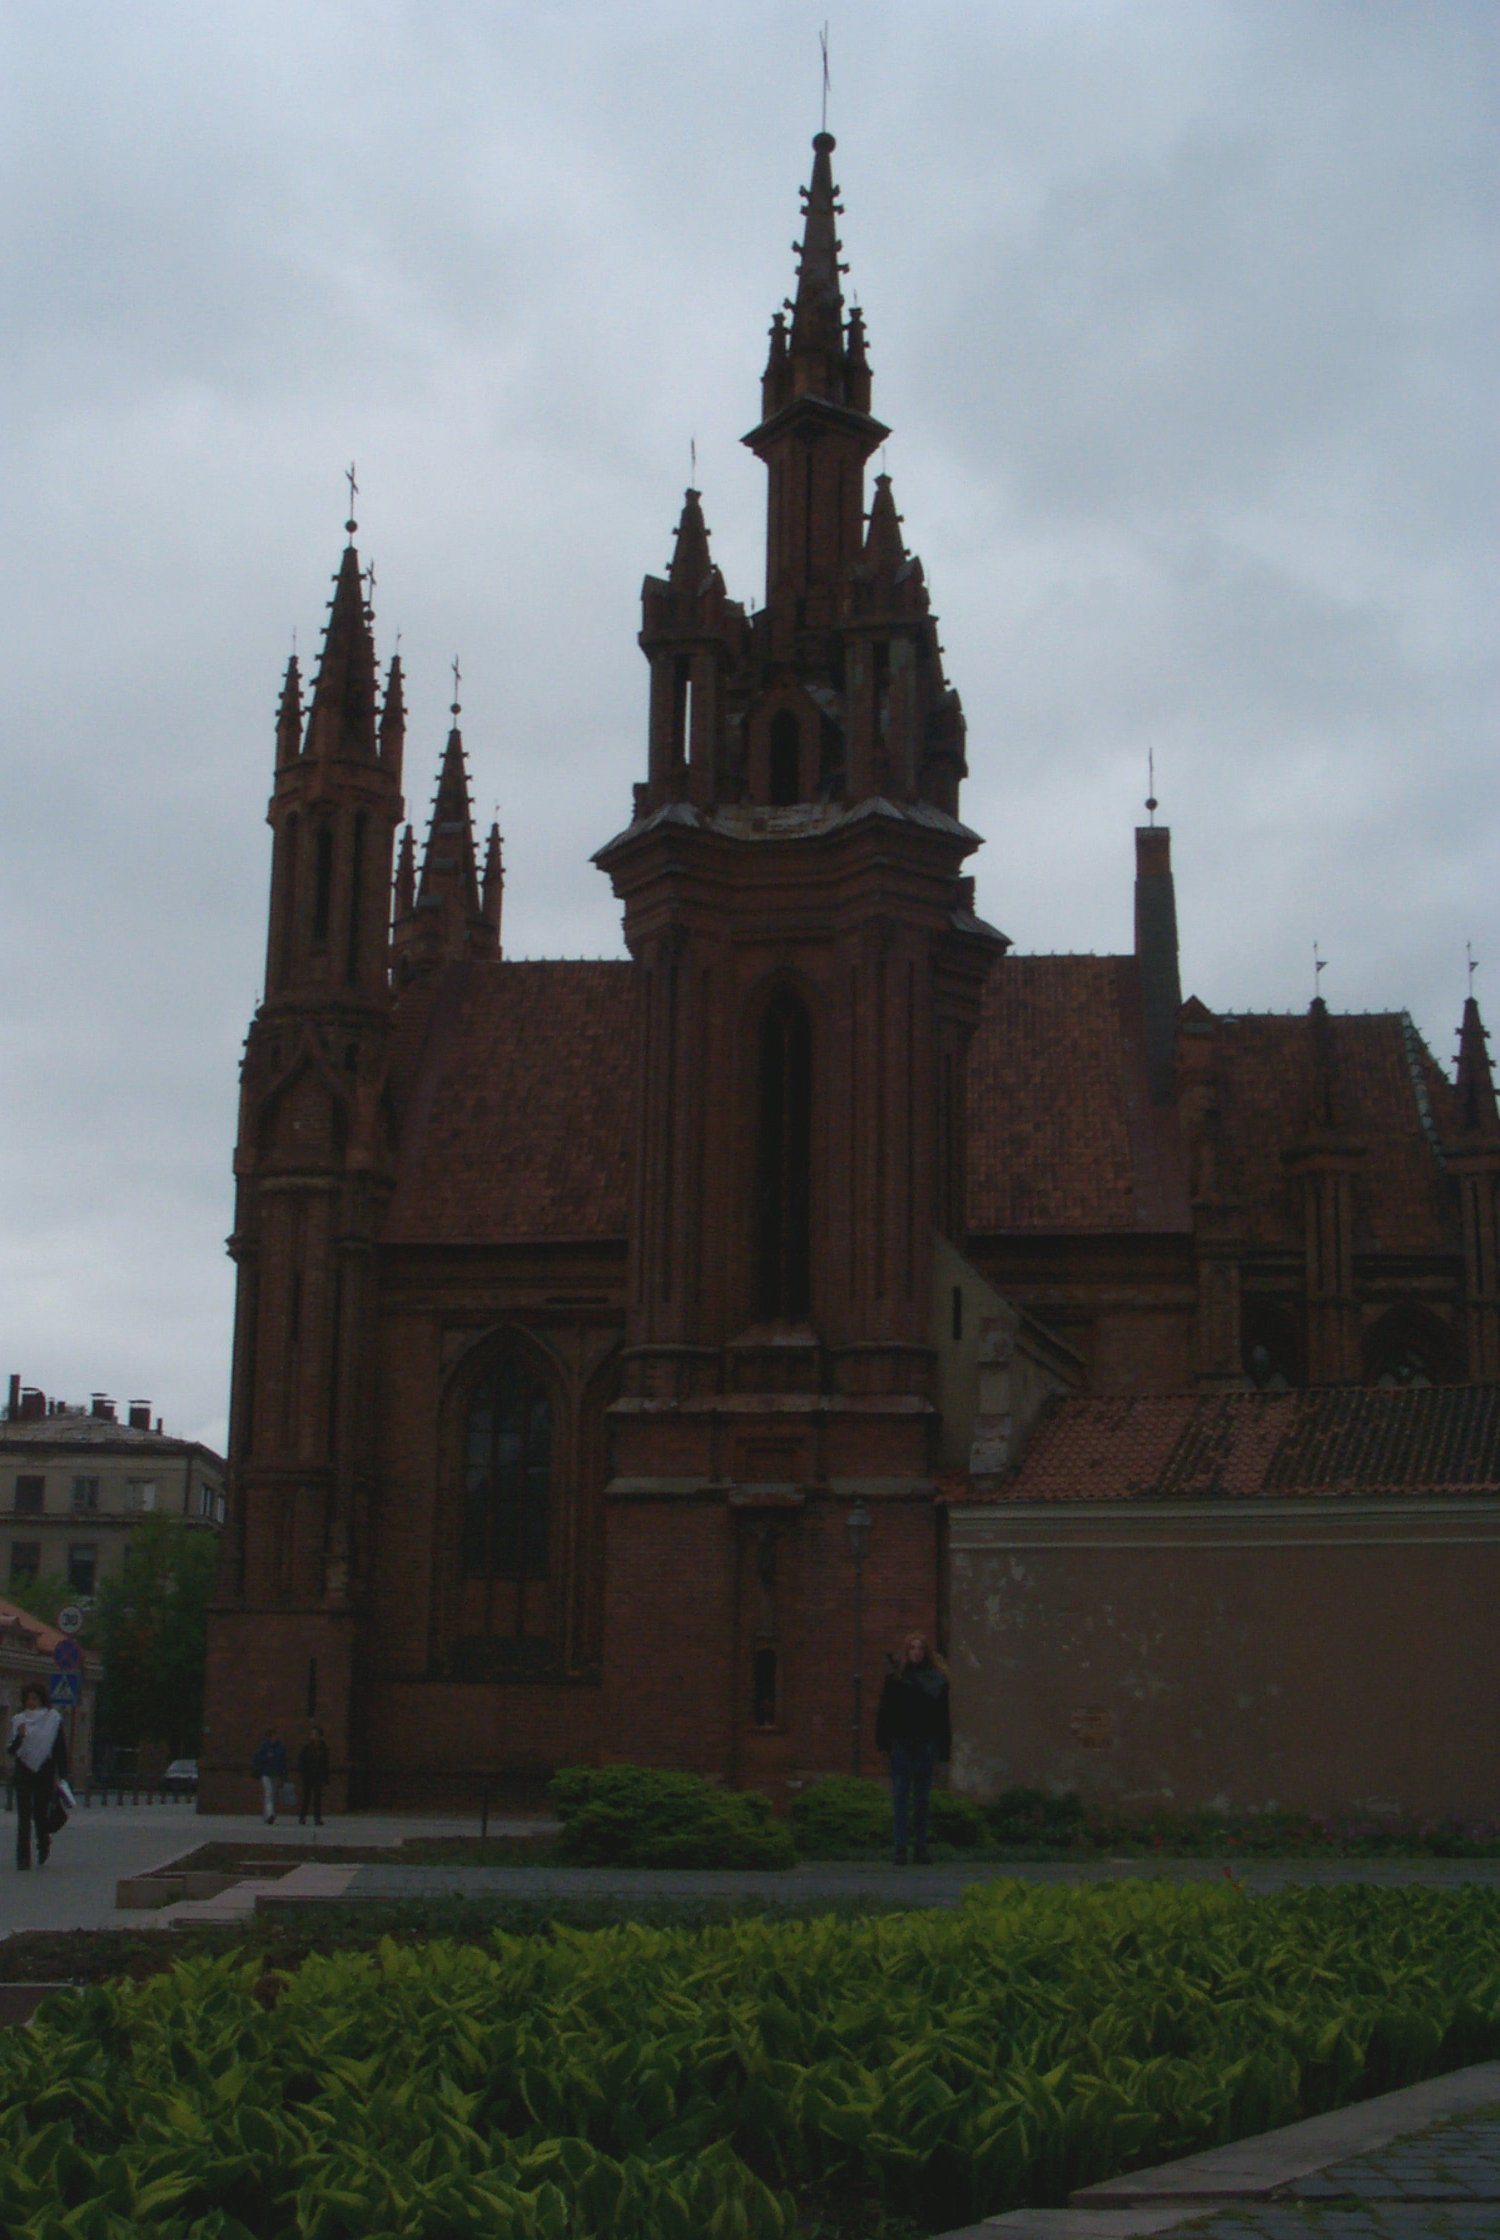 St. Ann's church, built in the late gothic period, is one of the most beautiful buildings in Vilnius old town.